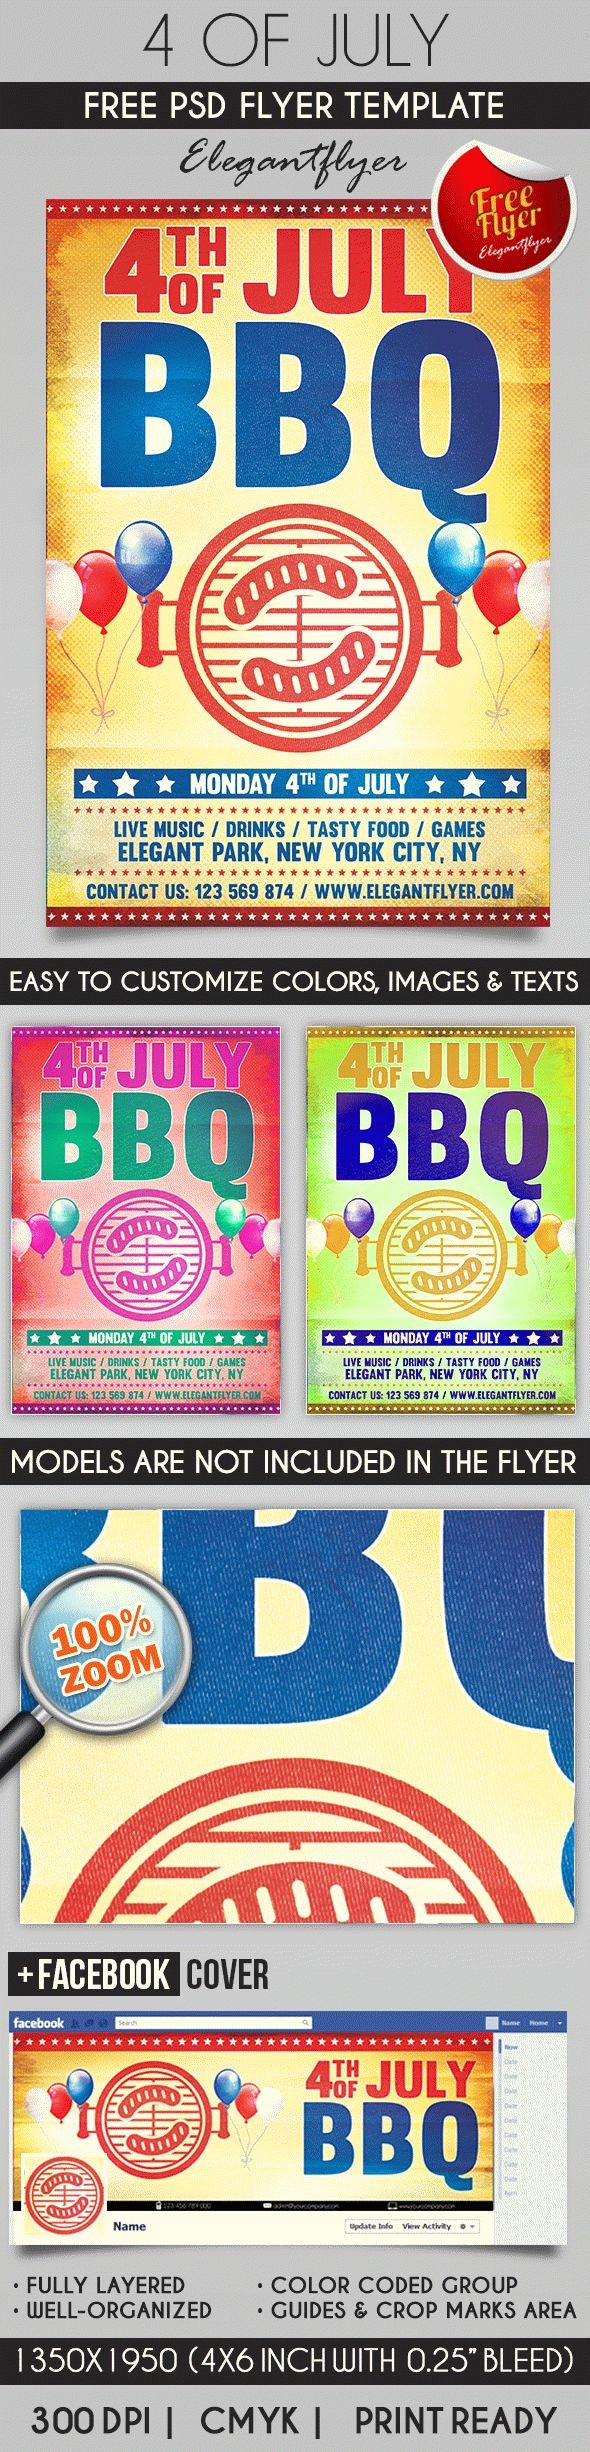 4th Of July Templates Free Luxury Flyer for 4th Of July Bbq – by Elegantflyer